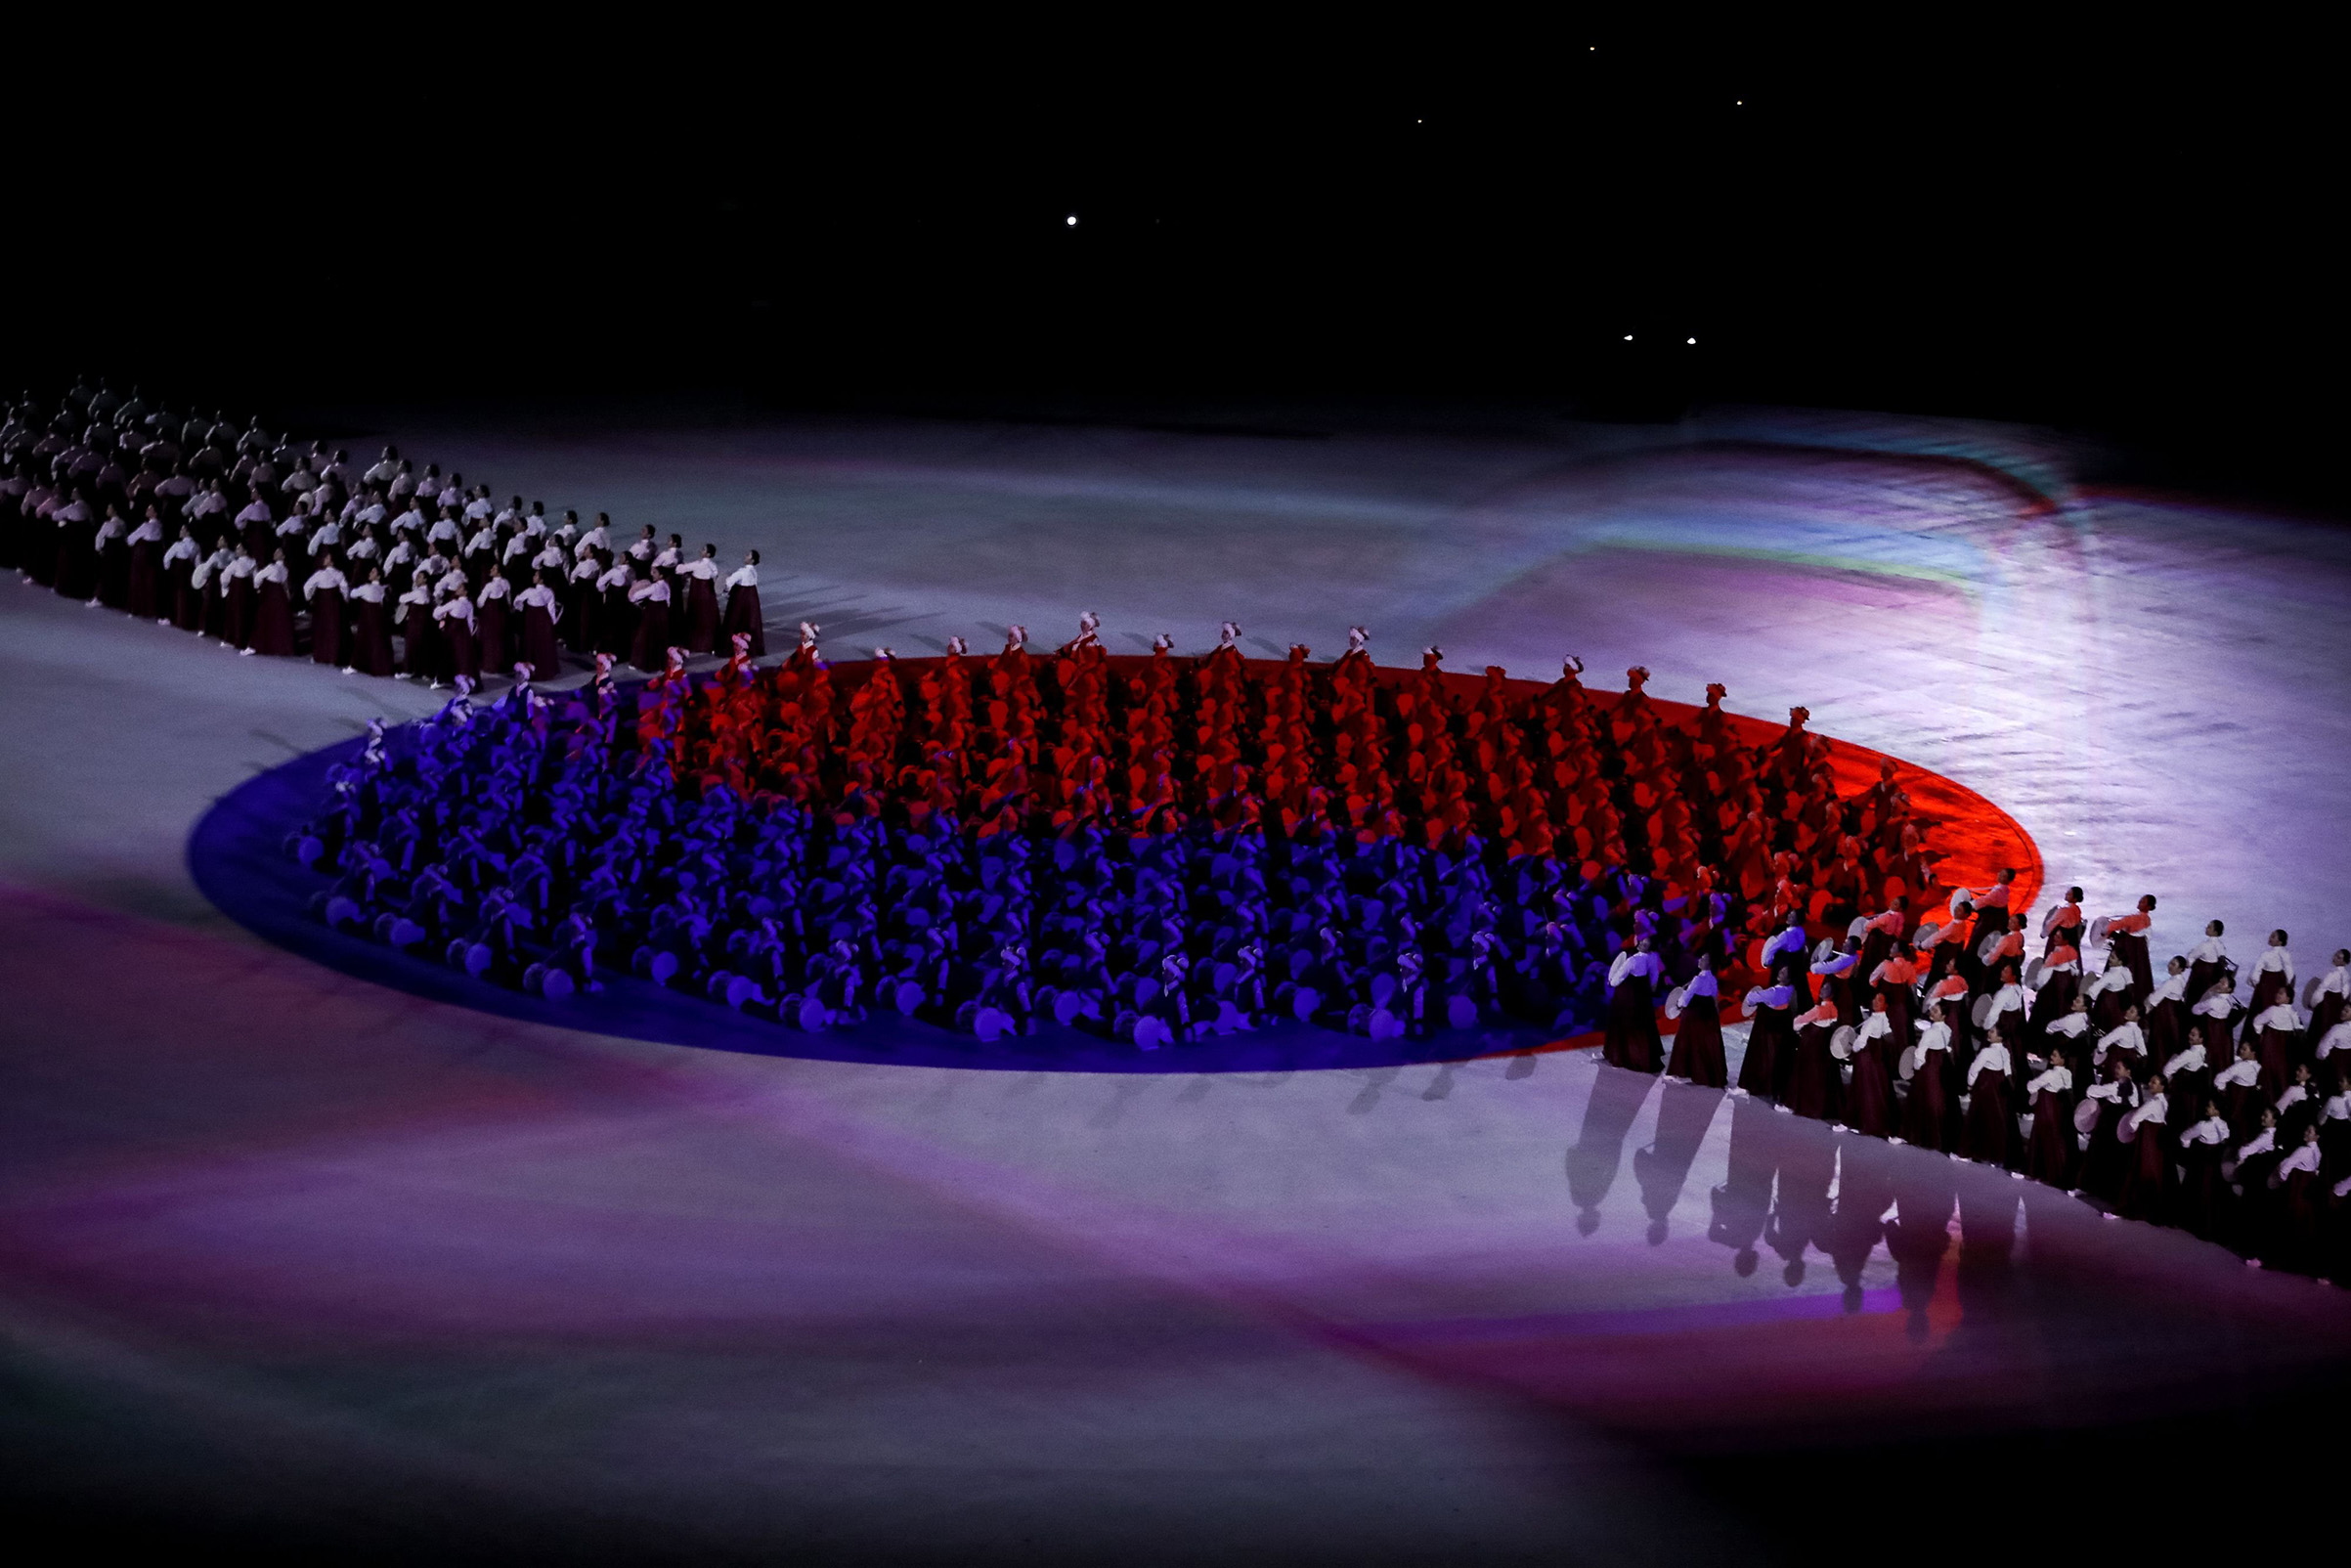 Participants form the South Korean flag during the opening ceremony of the Pyeongchang 2018 Winter Olympic Games.